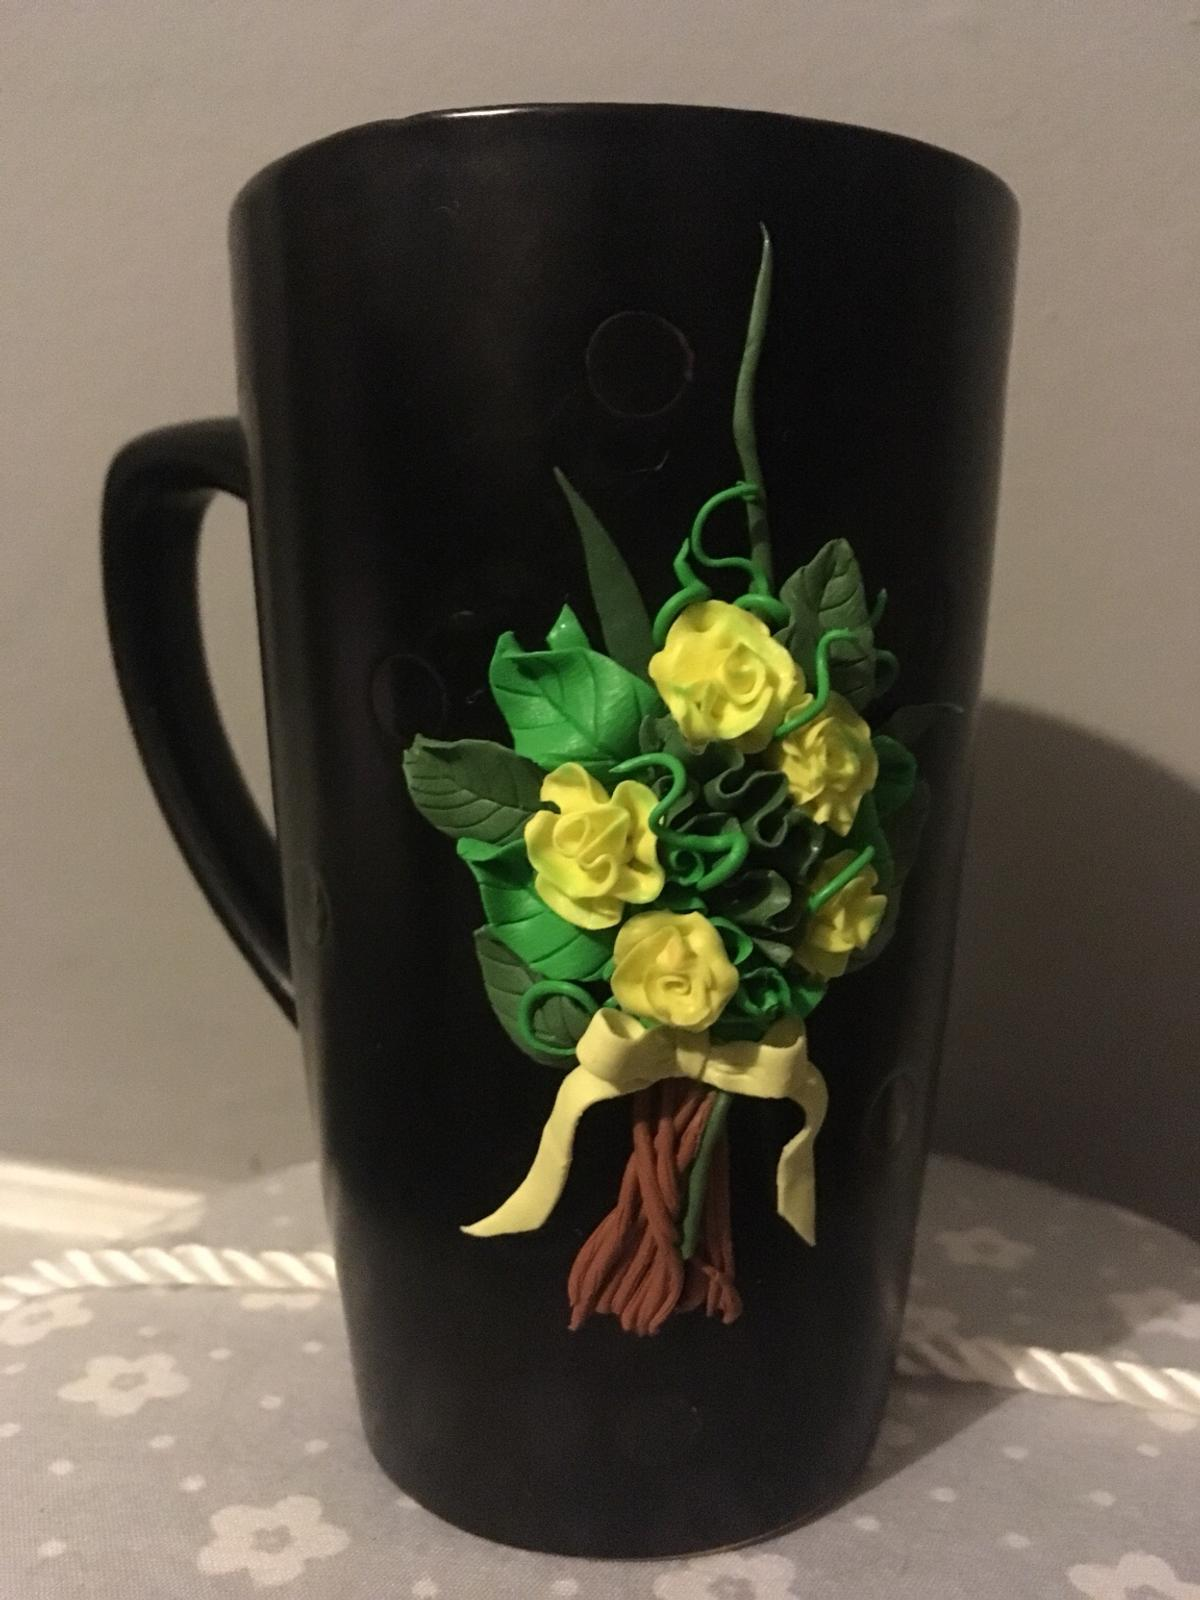 Polymer Clay Flowers Cup In Me15 Maidstone For 15 00 For Sale Shpock